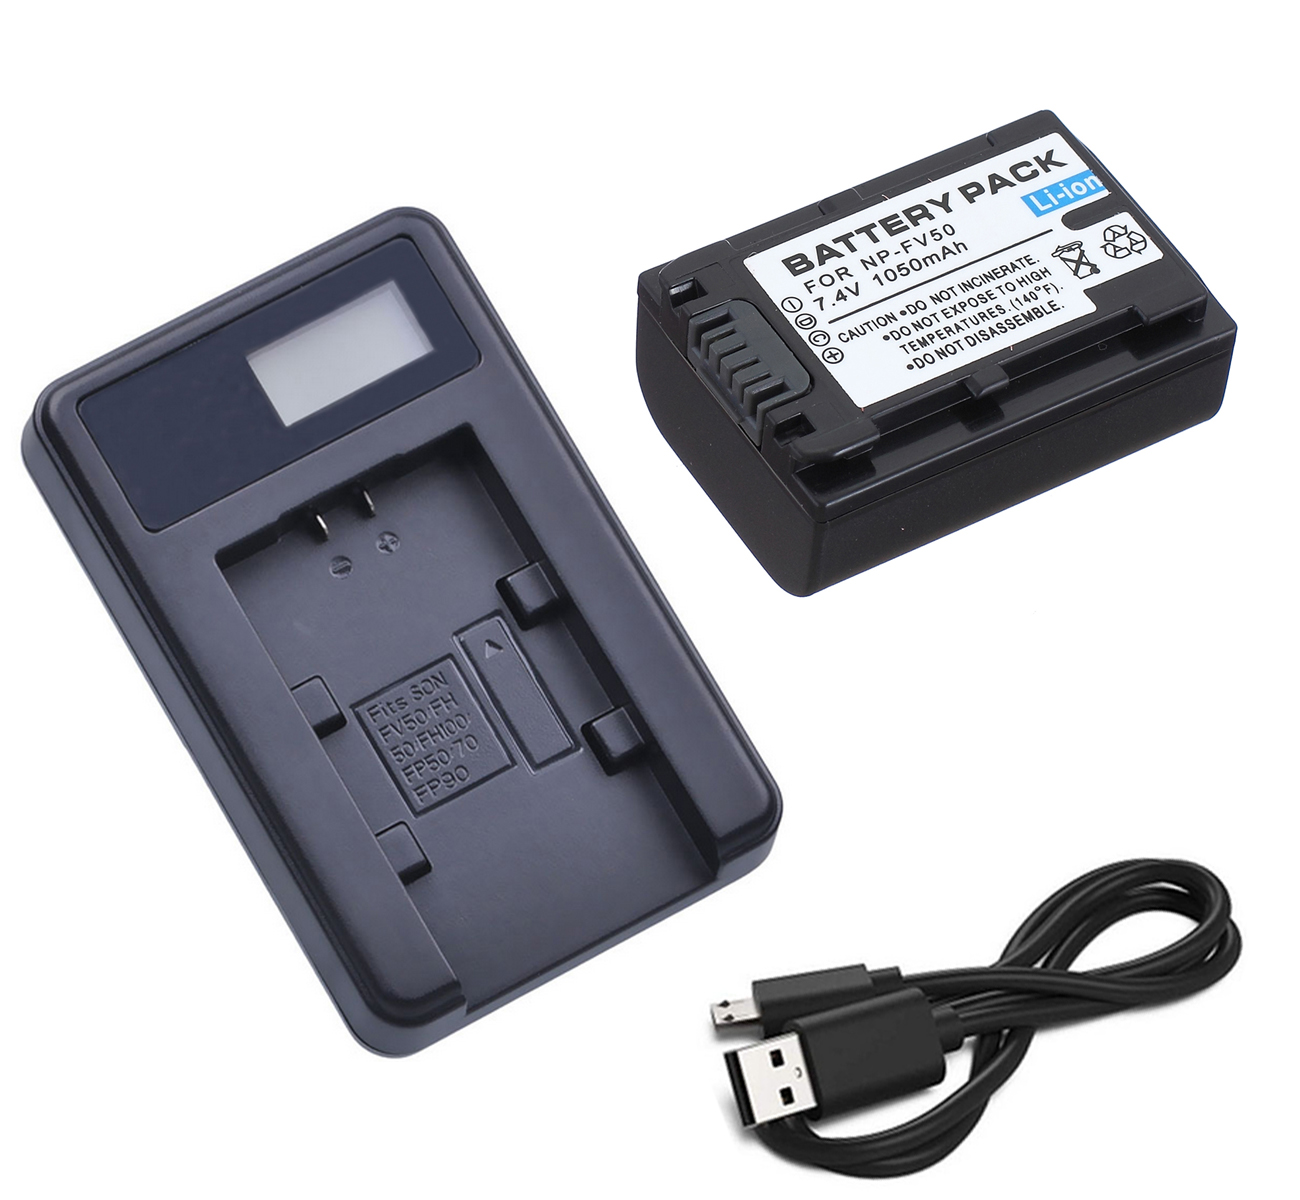 HDR-CX370V HDR-CX350V LCD USB Battery Charger for Sony HDR-CX300 HDR-CX360V HDR-CX330 HDR-CX305 HDR-CX390 Handycam Camcorder HDR-CX380 HDR-CX320